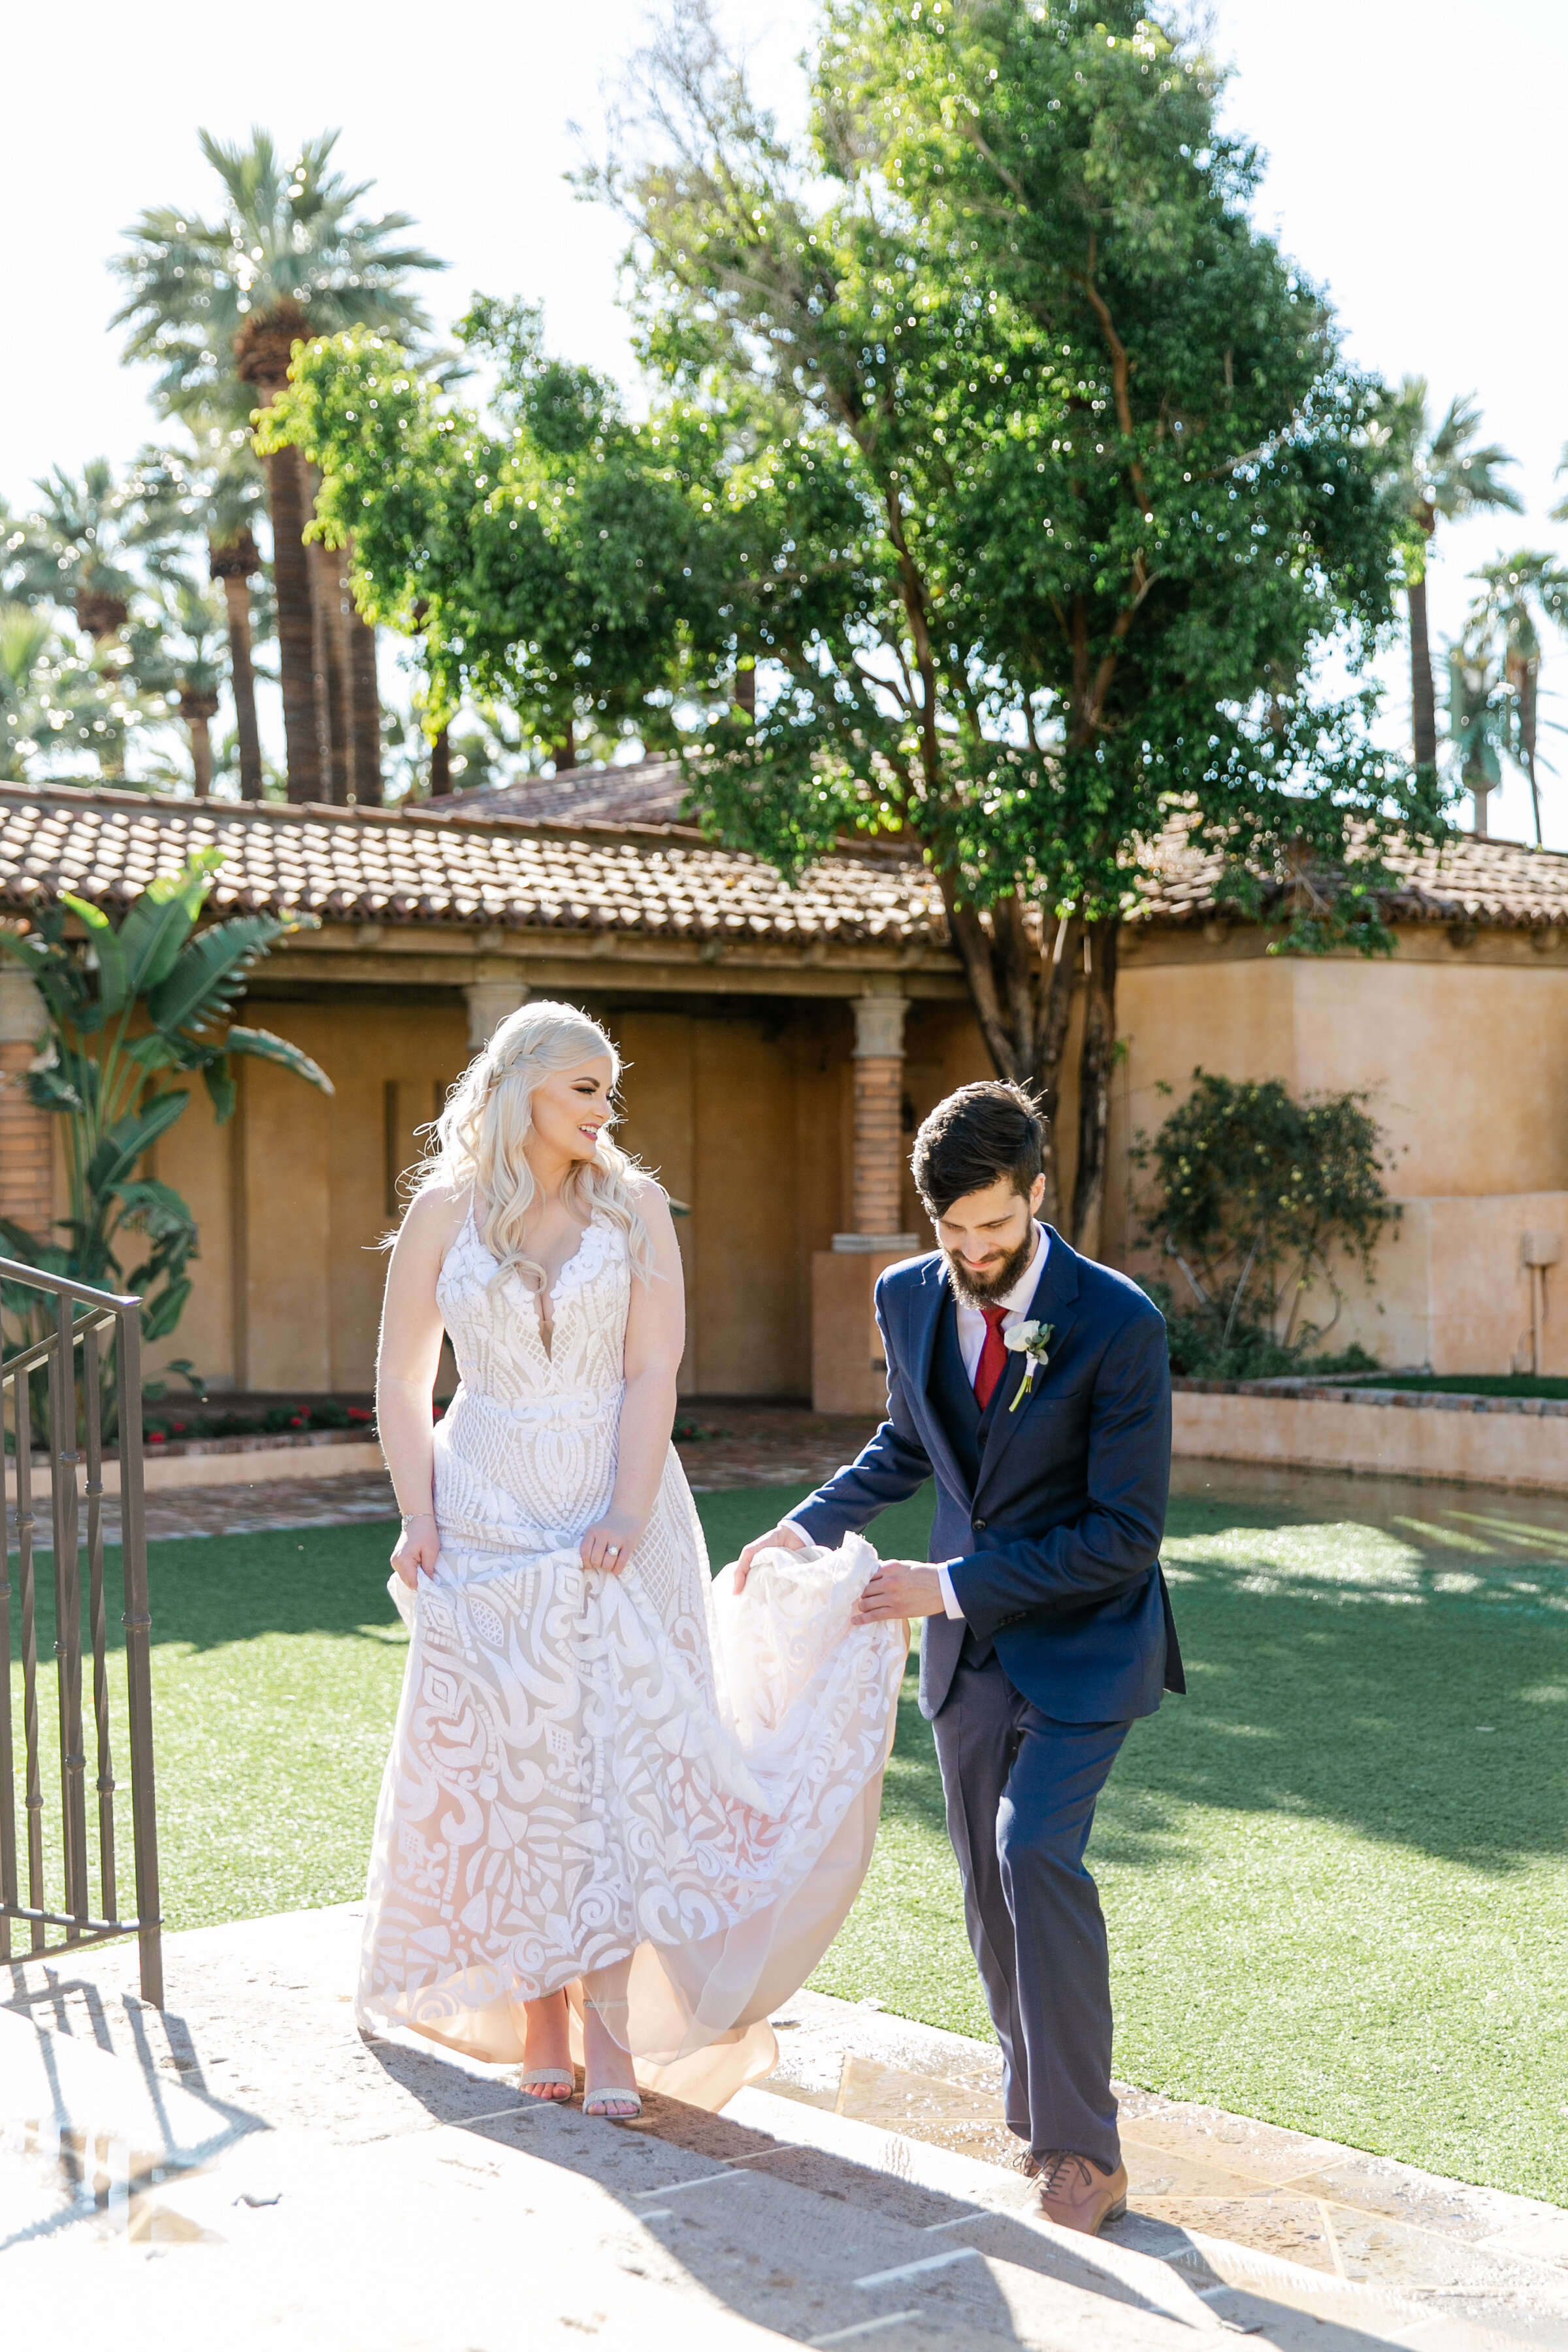 Karlie Colleen Photography - The Royal Palms Wedding - Some Like It Classic - Alex & Sam-173